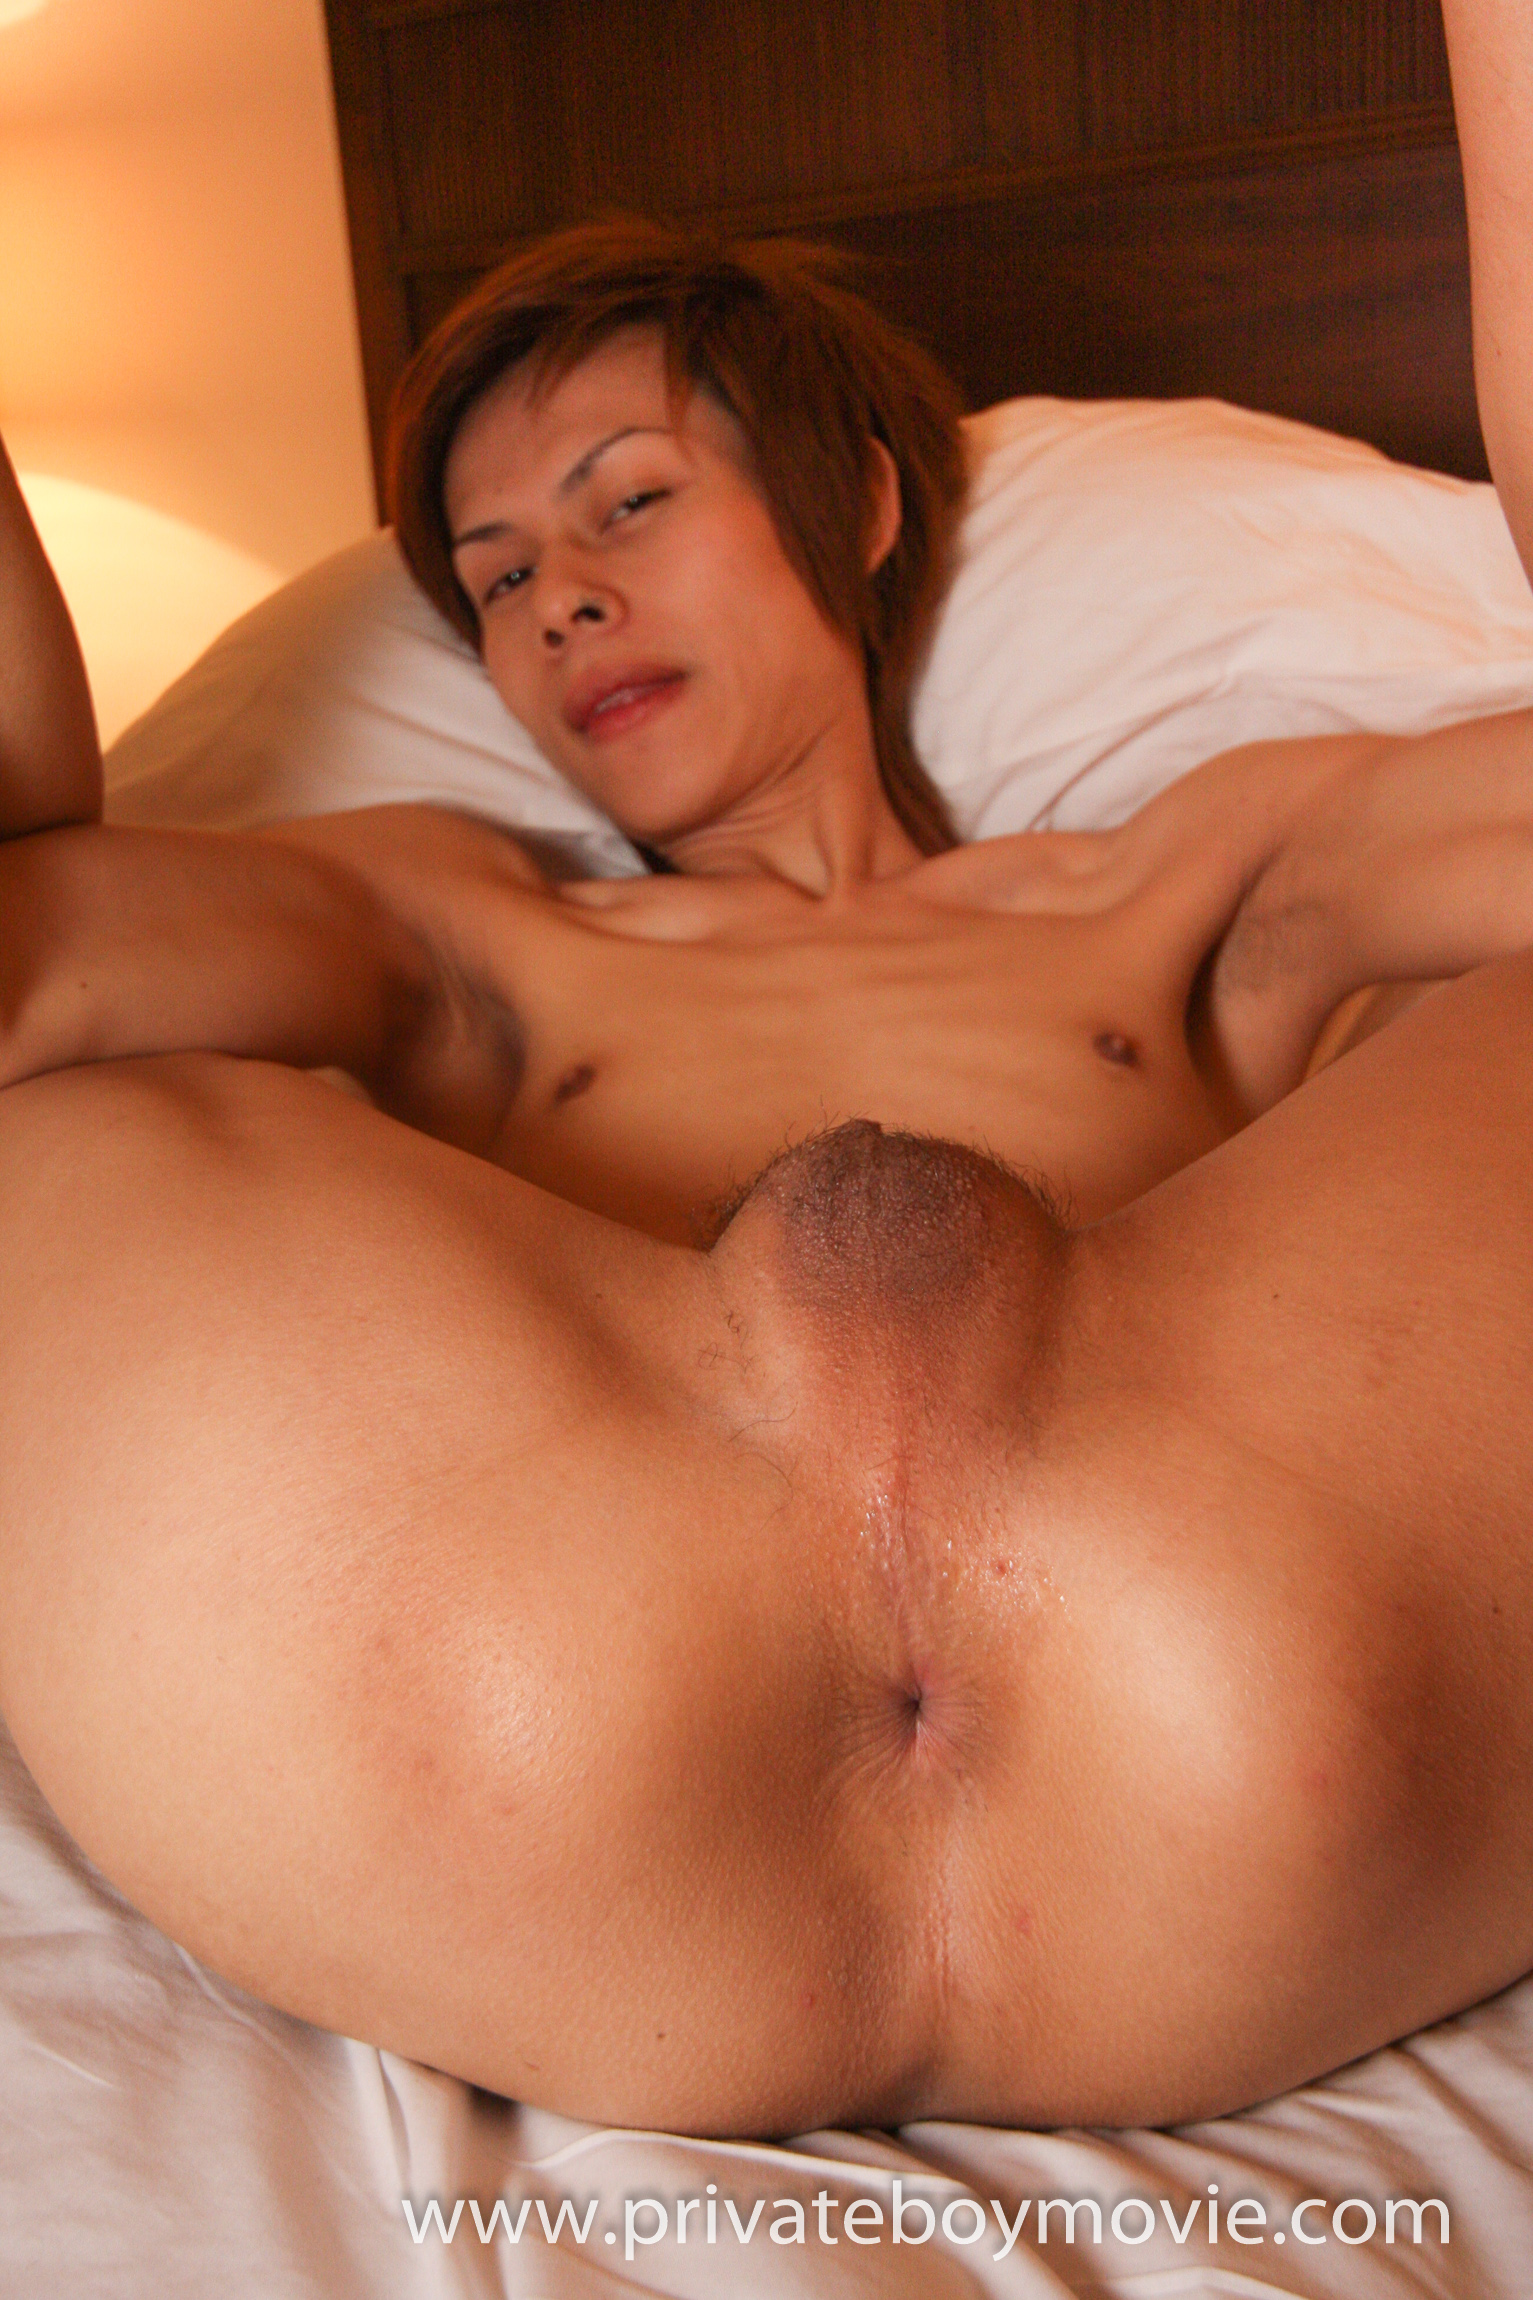 Sexy Fun and Cum with Skinny Asian Femboy